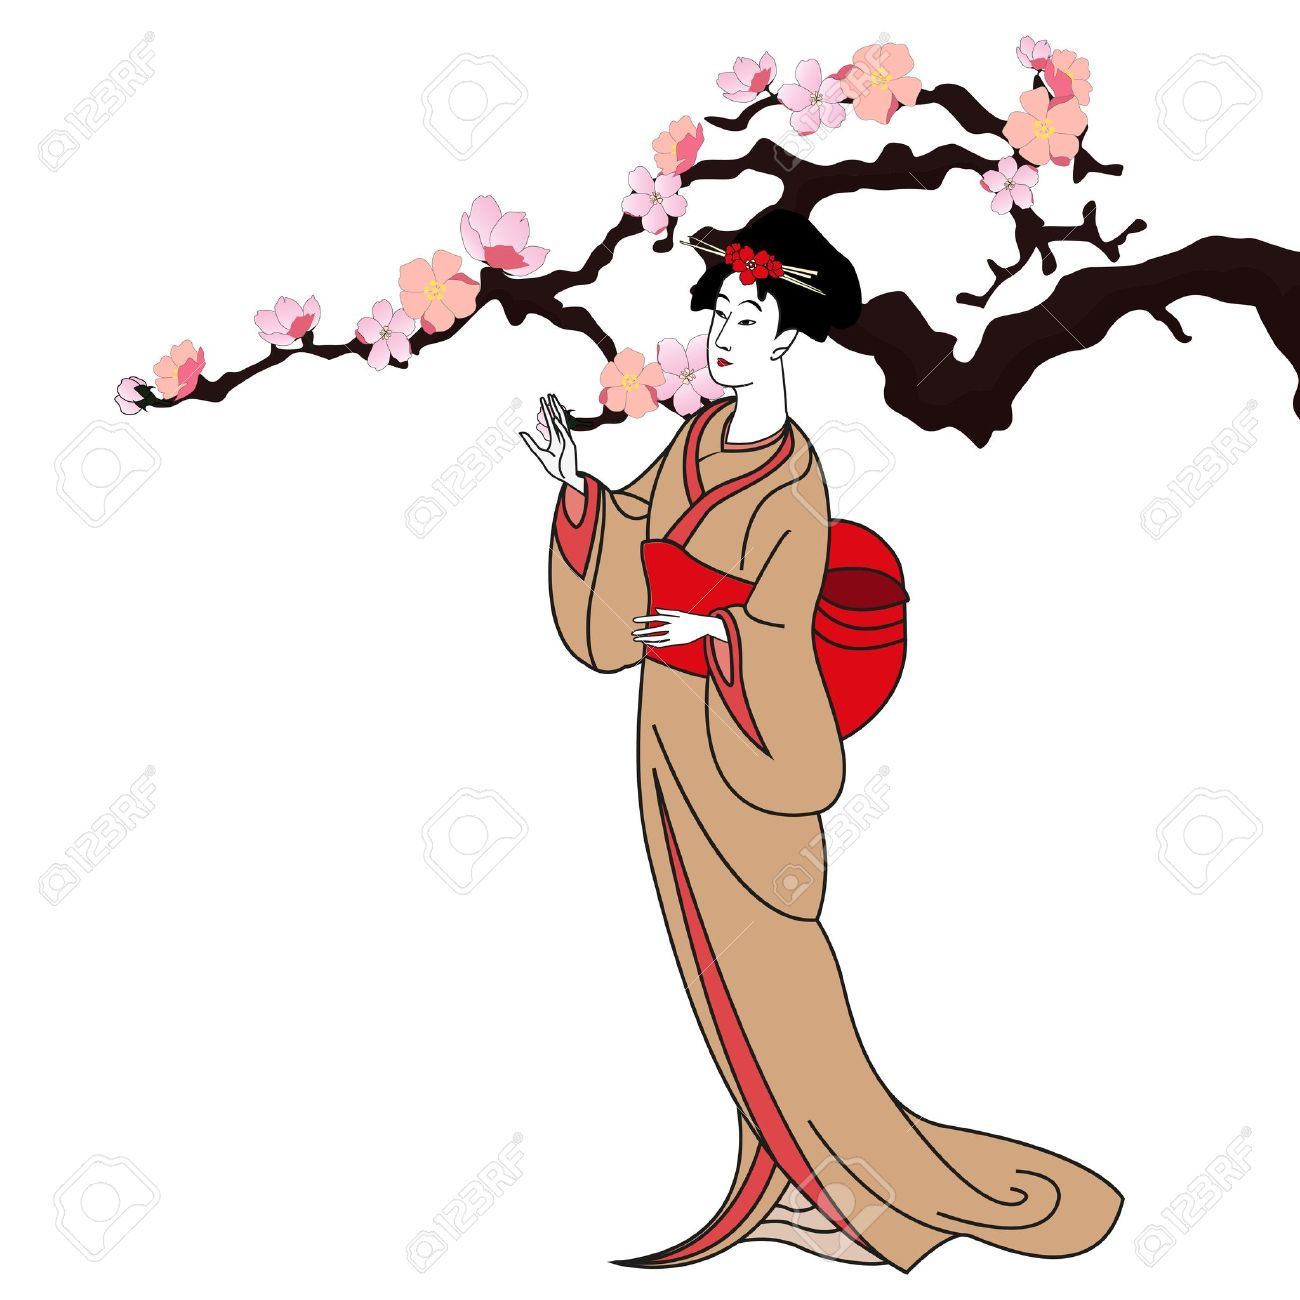 vector background with a japan girl - vector illustration Stock Vector - 14030717